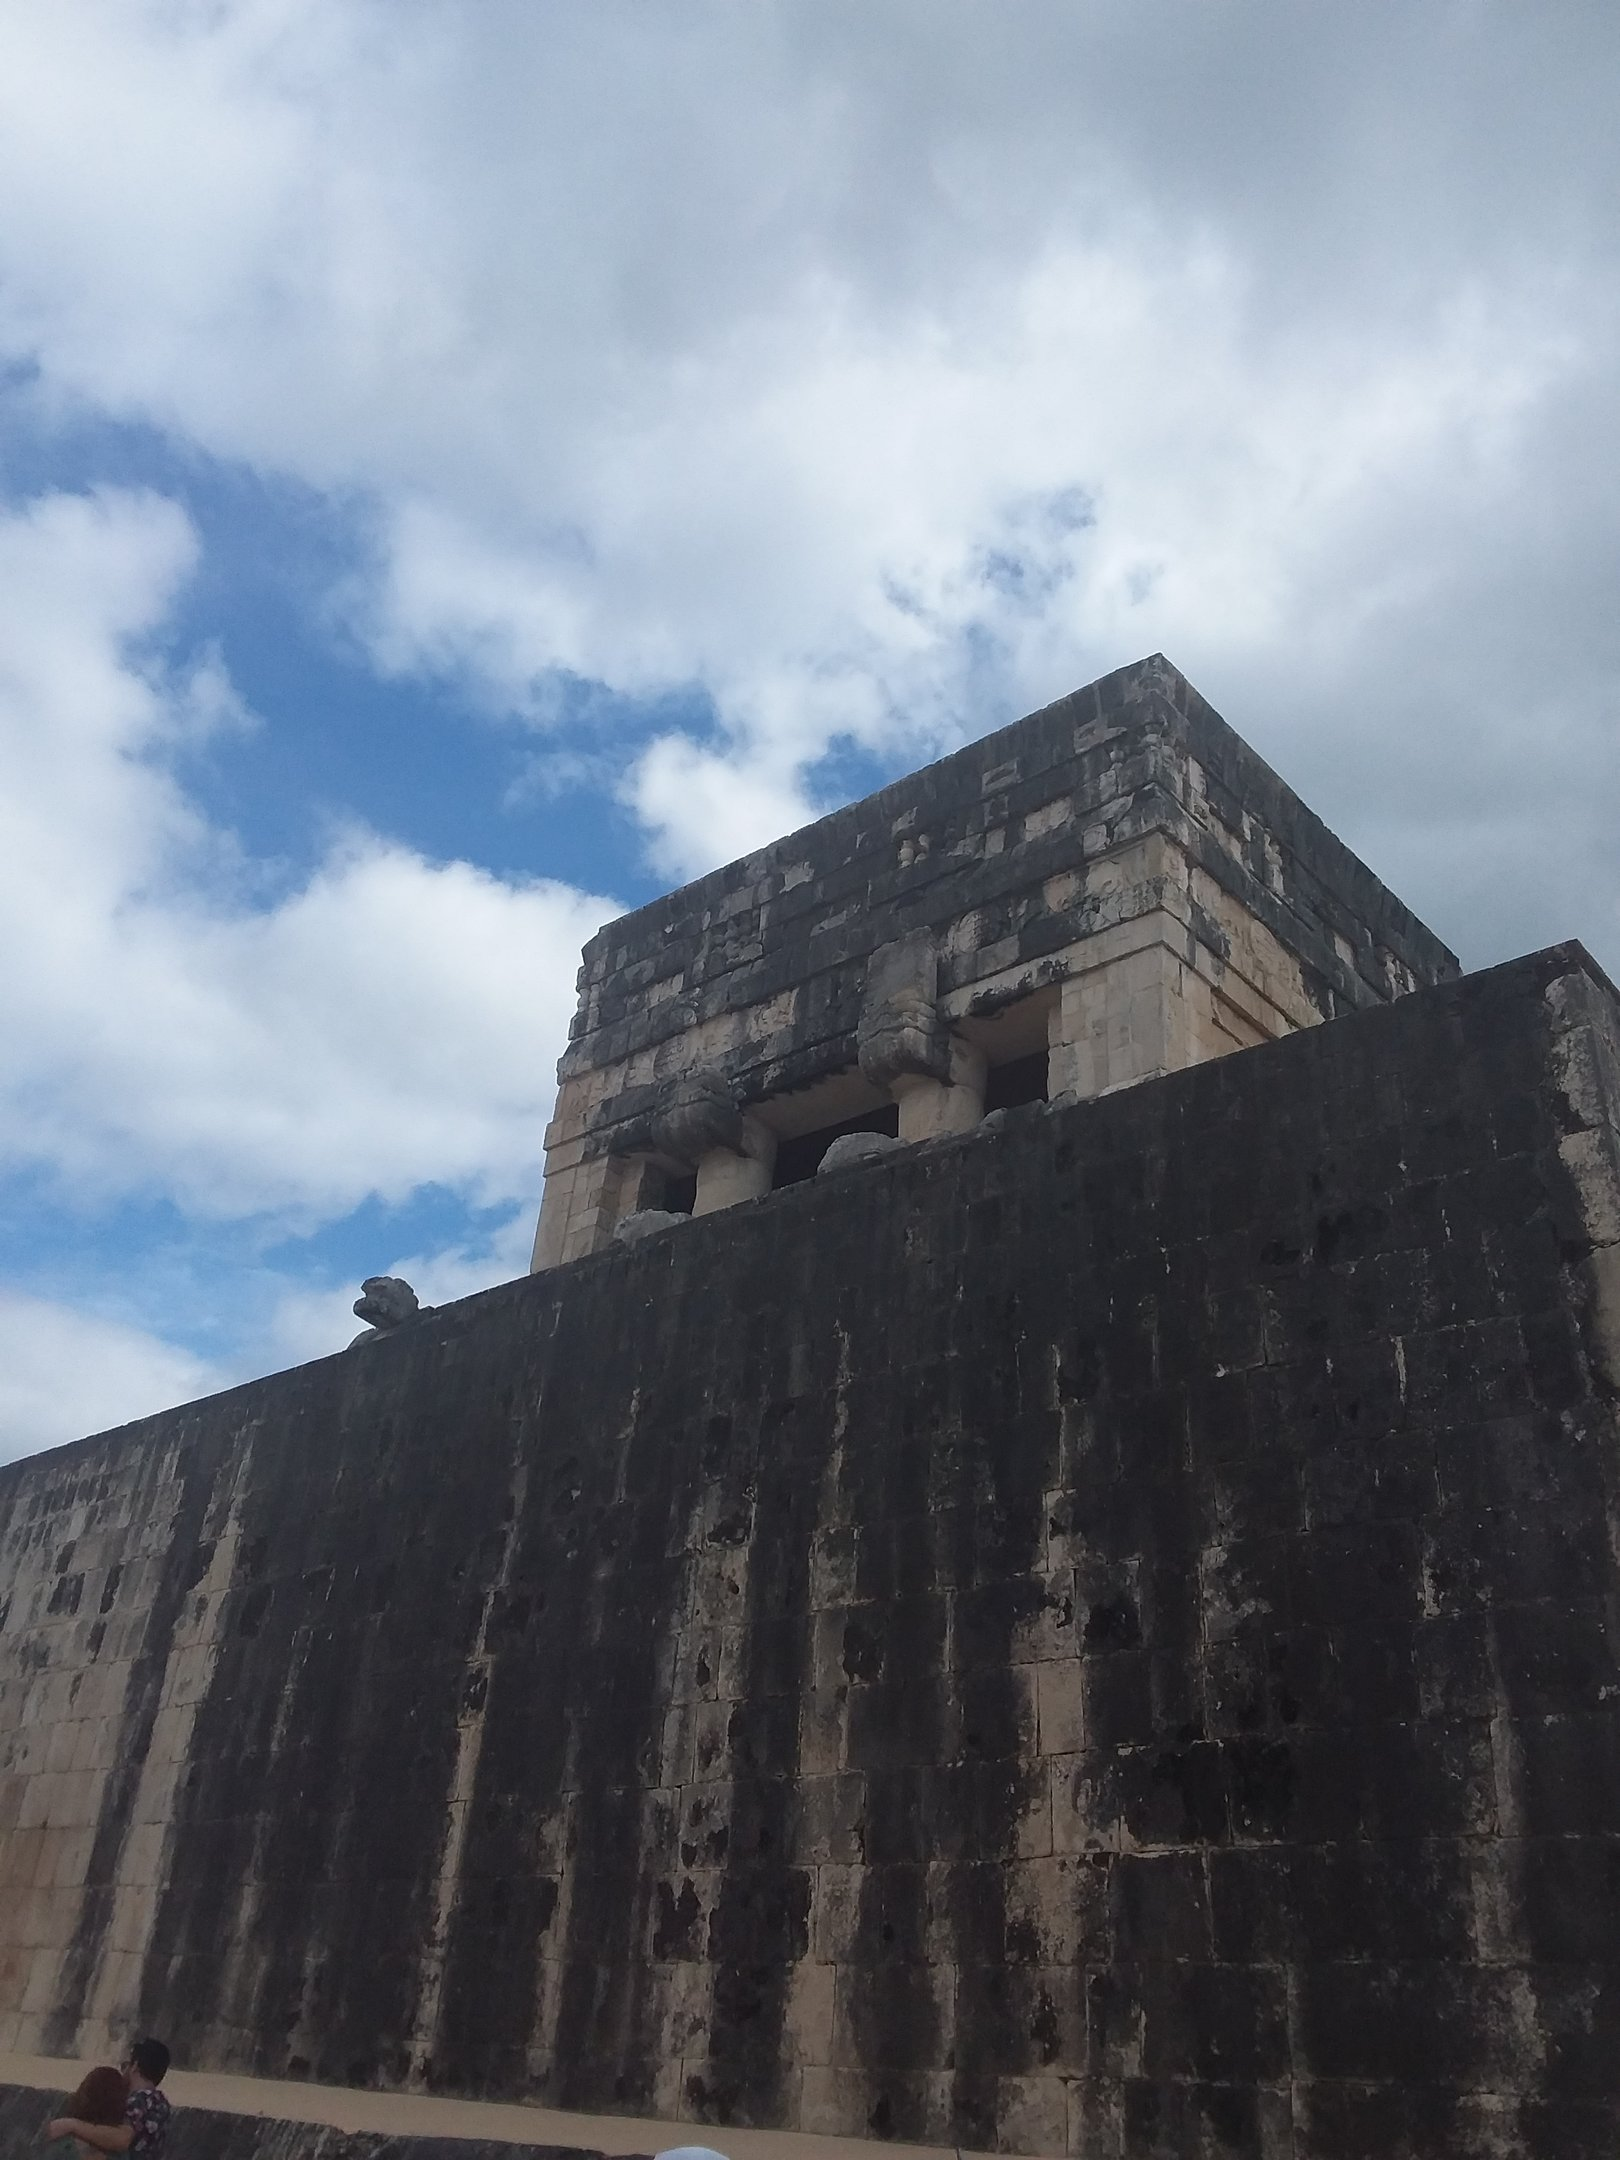 20181224_091050-jpg.48208_Chichen Itza (Not So Much a Story Than It Is Pictures)_Travel Stories_Squat the Planet_4:02 PM